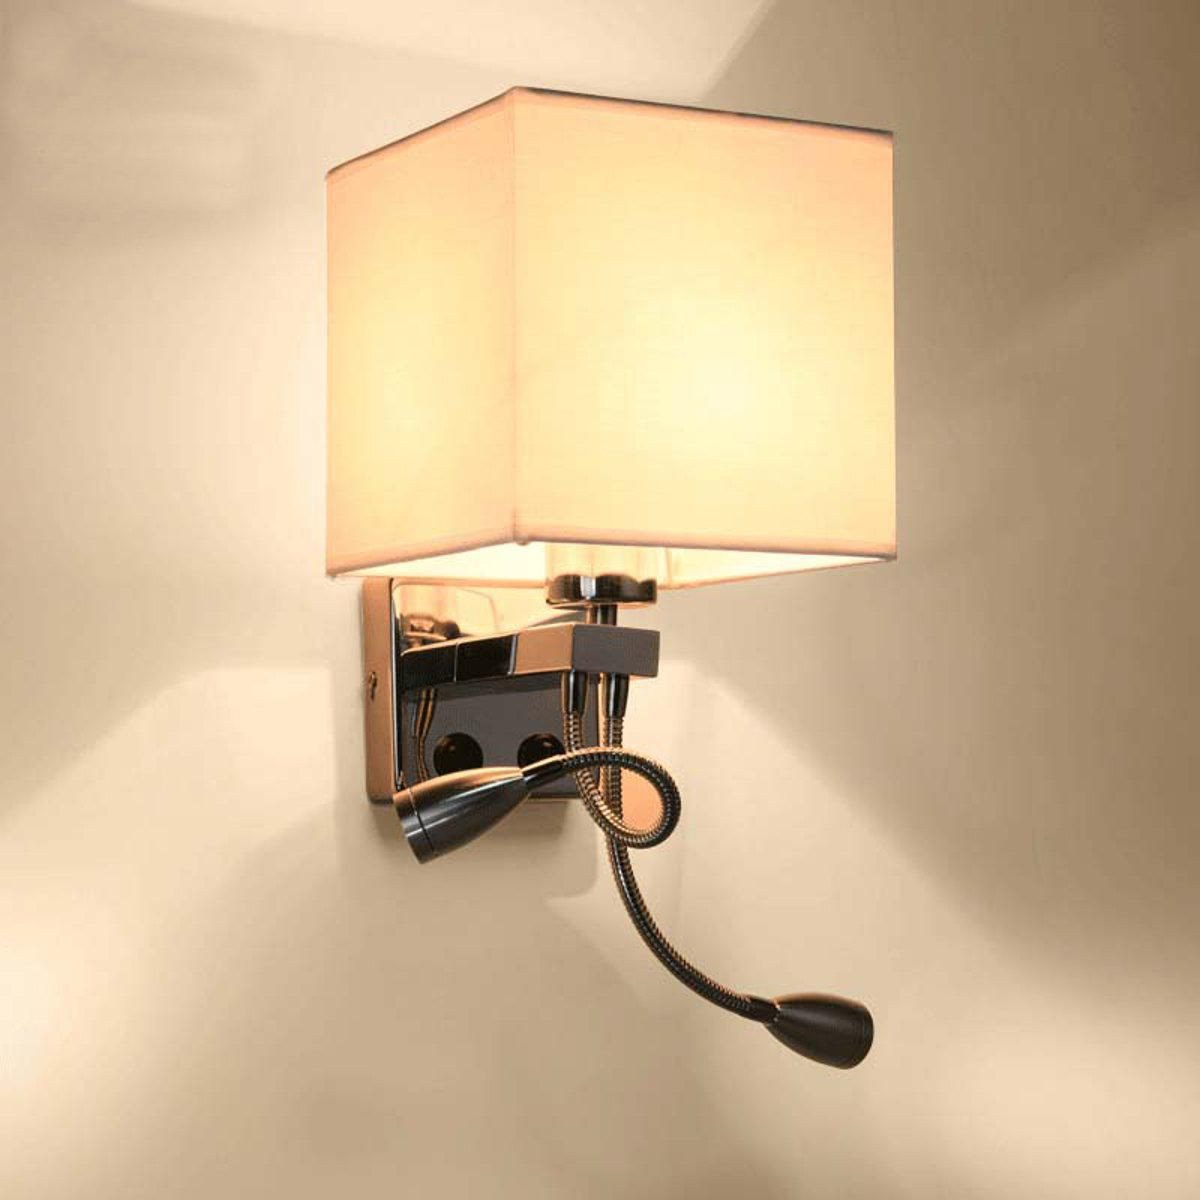 Night Lamp for Bedroom Elegant Modern Metal Led Night Light Bedroom Bedside Living Room